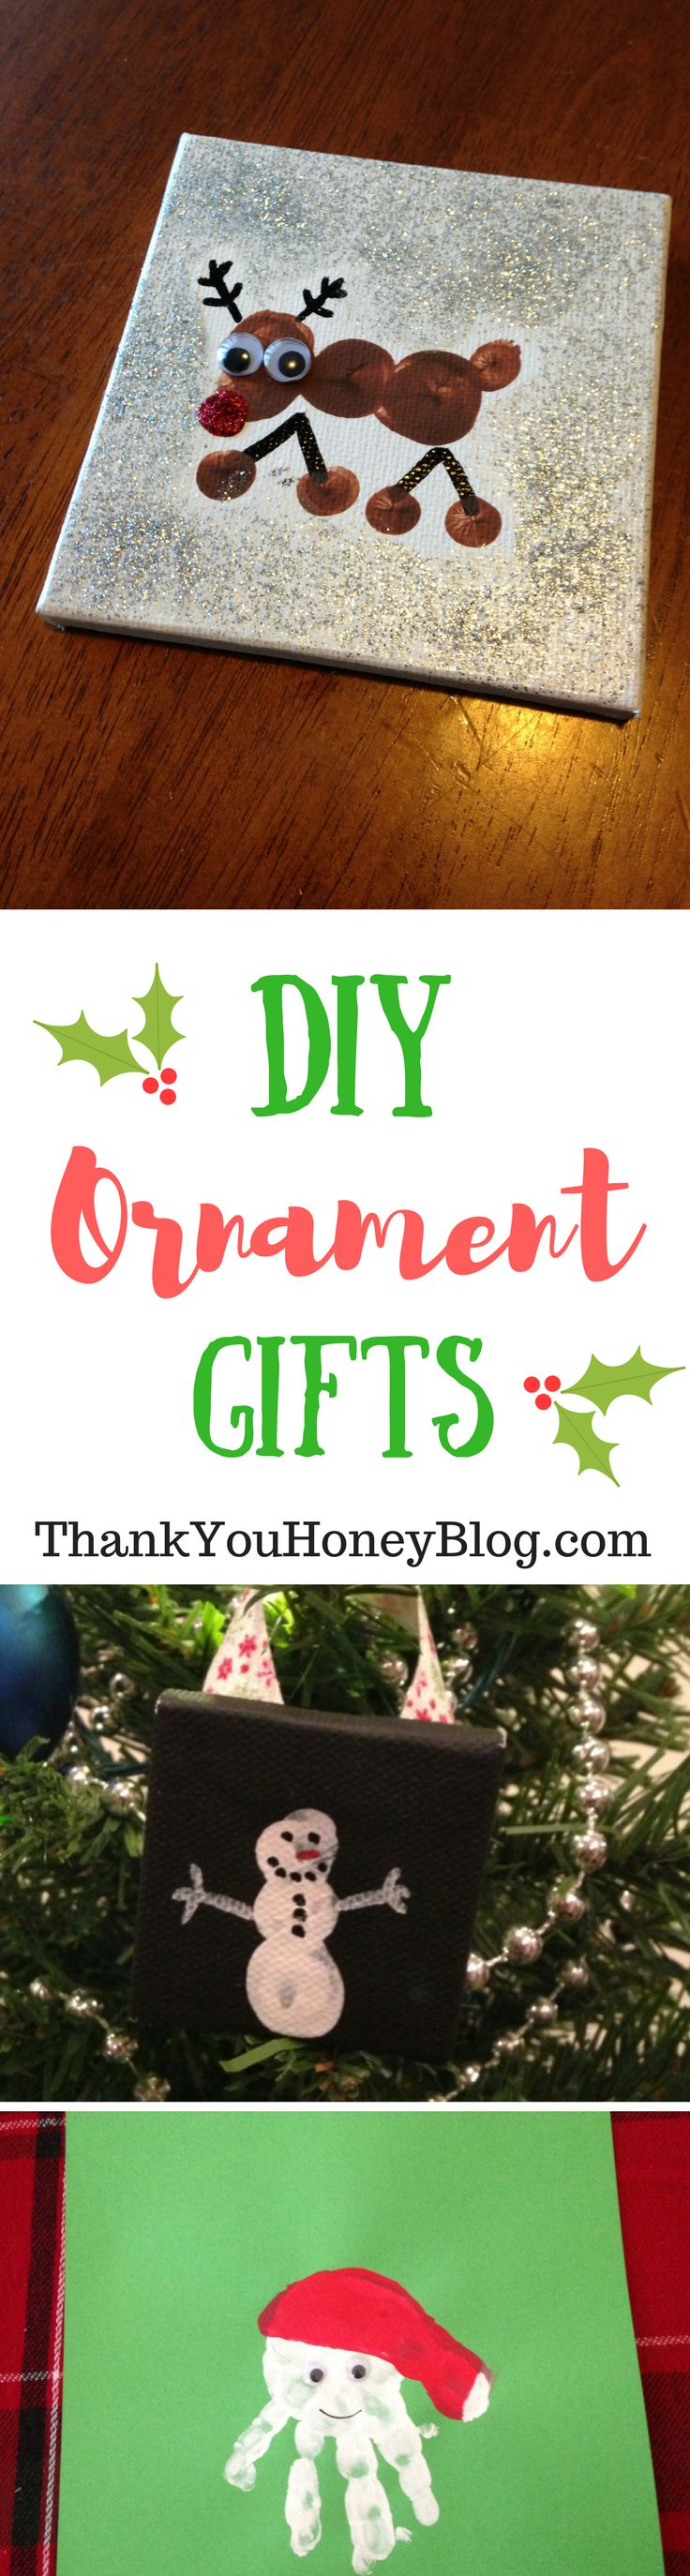 Last Minute Kids DIY Ornament Gifts Thank You Honey, Last minute, Holiday, DIY, ornaments, Presents,Last Minute Kids DIY Ornament Gifts, Gifts, Kids, Crafts, activities,Christmas, Holiday Kids Crafts,